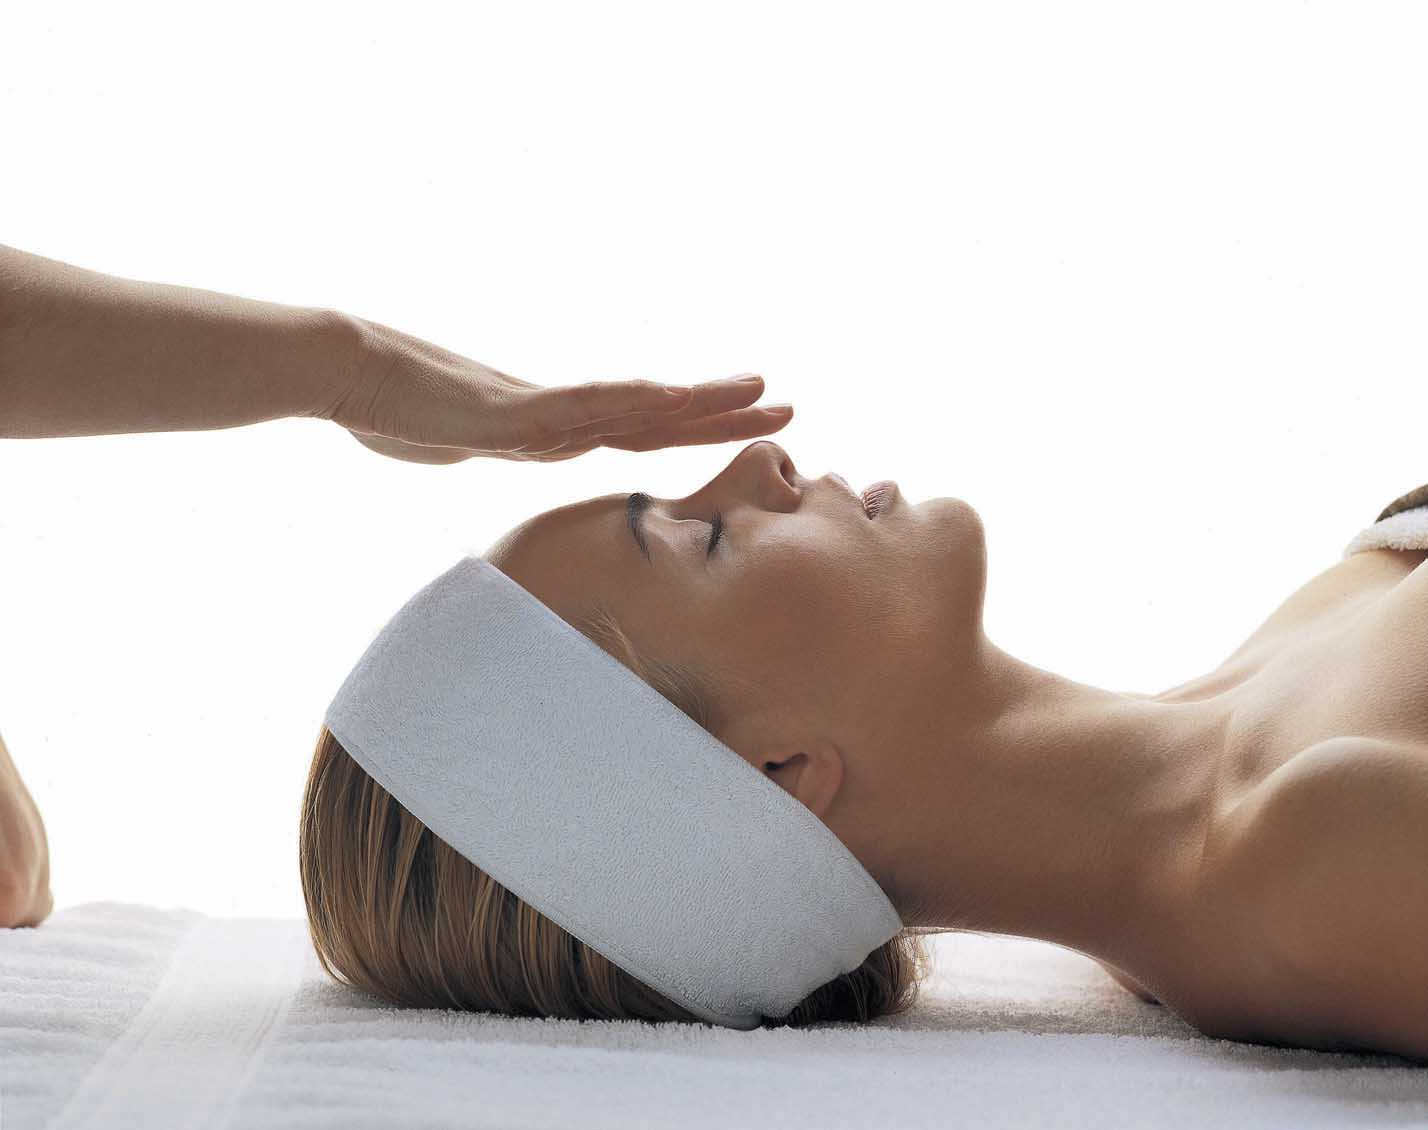 GTi Indian Head Massage £125 - This course covers the technique for upper back, shoulder, upper arm, neck, scalp and face massage. It also includes the theory behind Indian Head Massage. It includes all the necessary anatomy & physiology, plus reception, consultation, aftercare guidance and contra-indications to treatment.